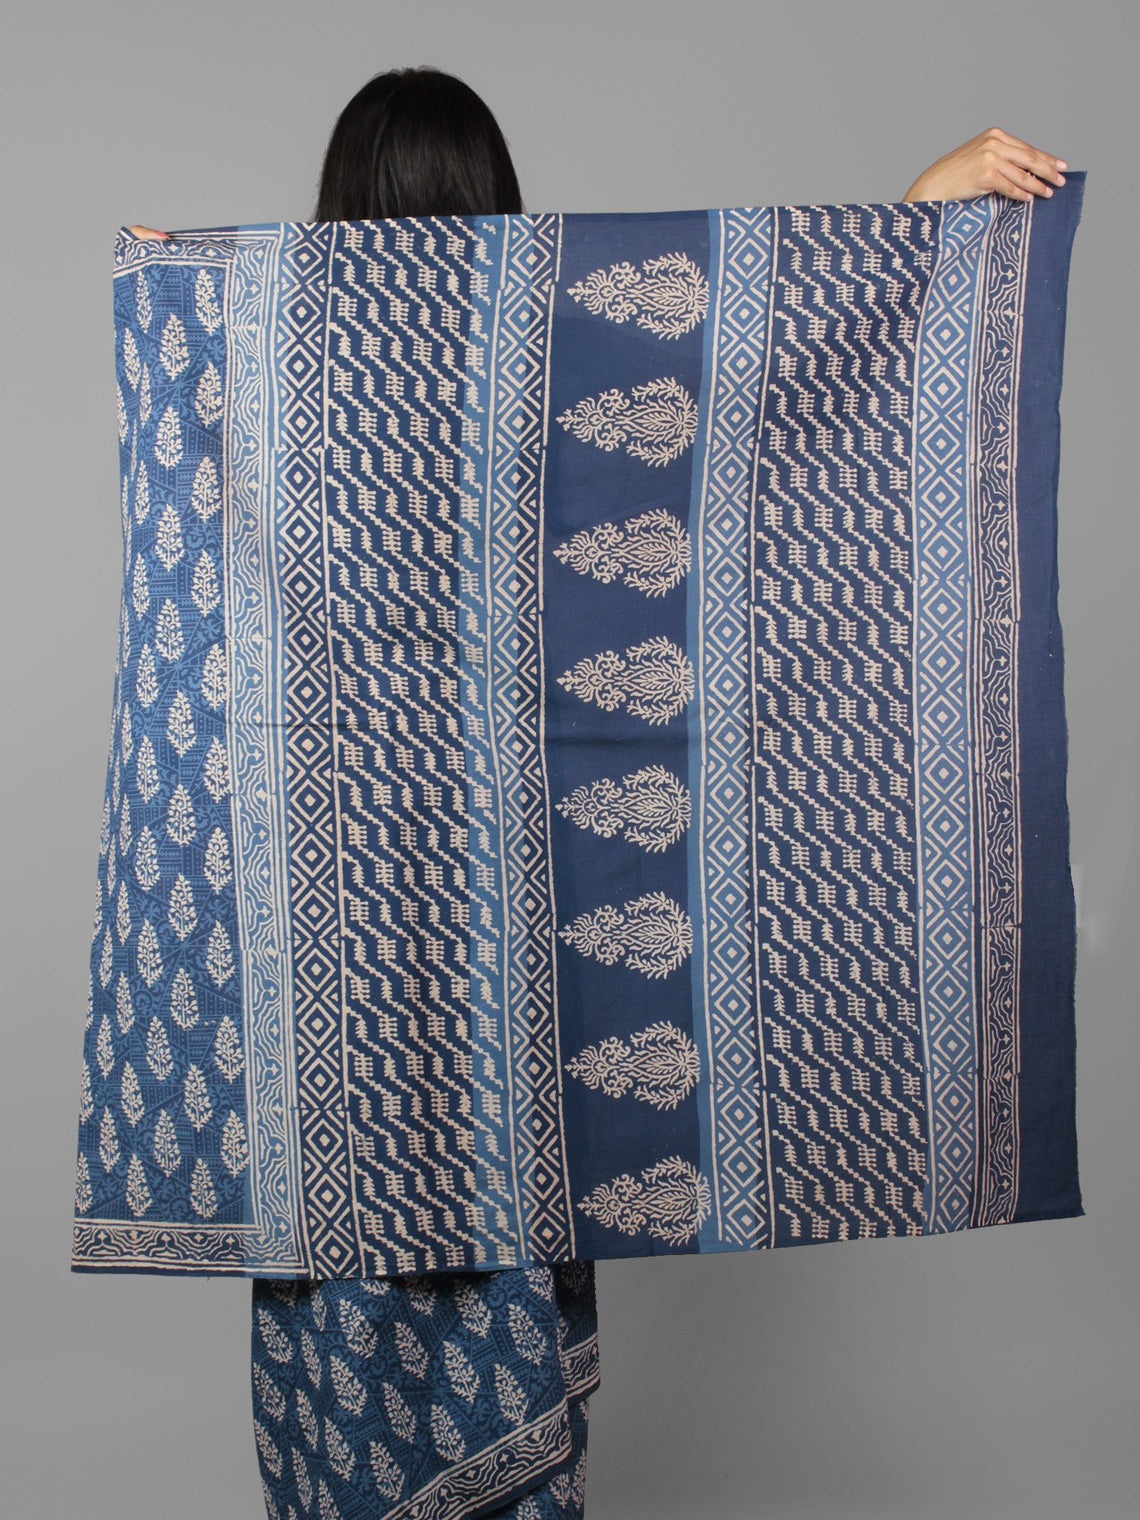 Indigo Ivory Hand Block Printed in Natural Colors Cotton Mul Saree - S031702013